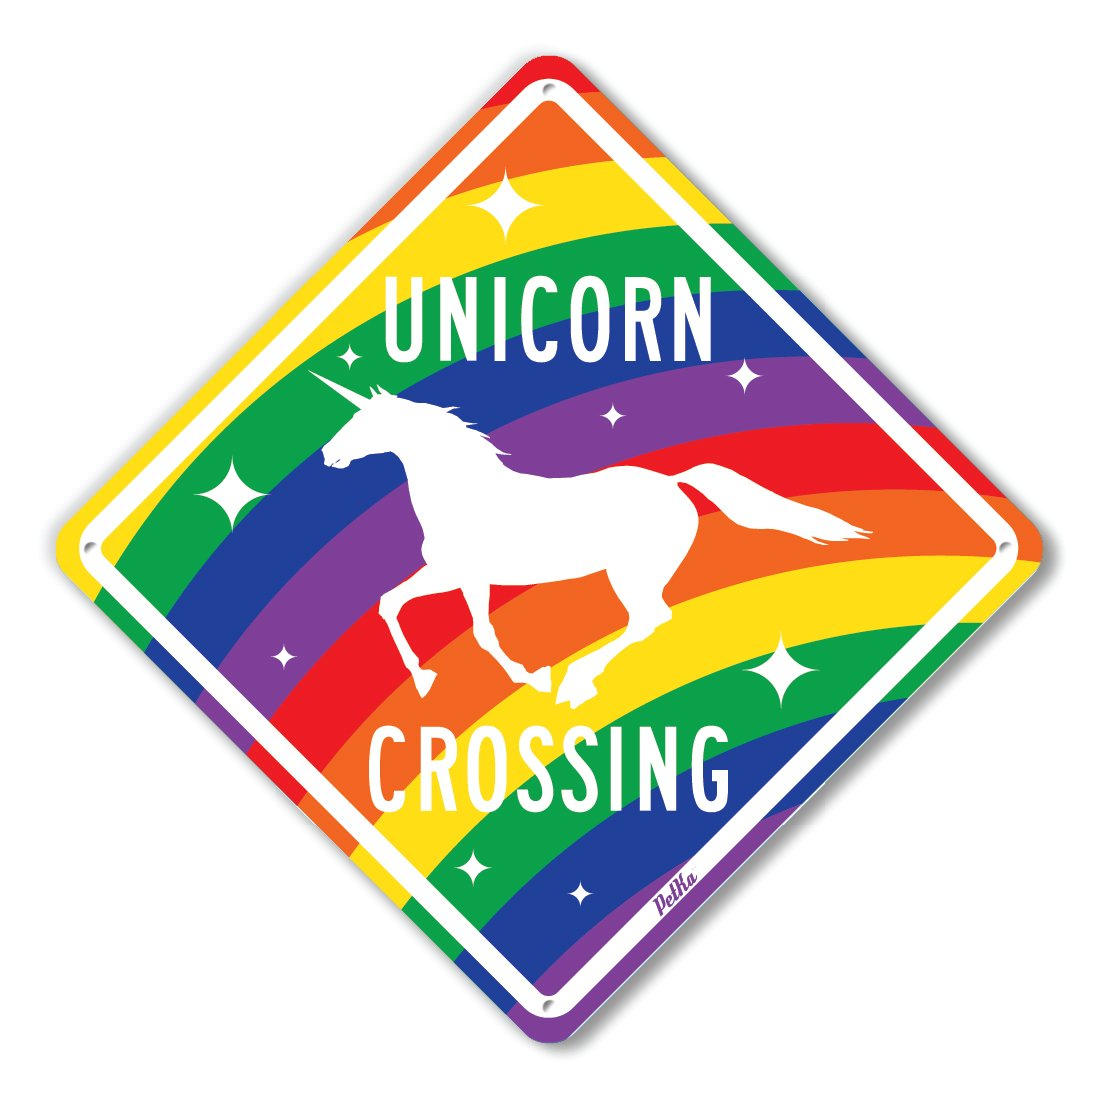 PetKa Signs and Graphics PKAC-0010-NA_10x10''Unicorn Crossing'' Aluminum Sign, 10'' x 10'', White on Rainbow